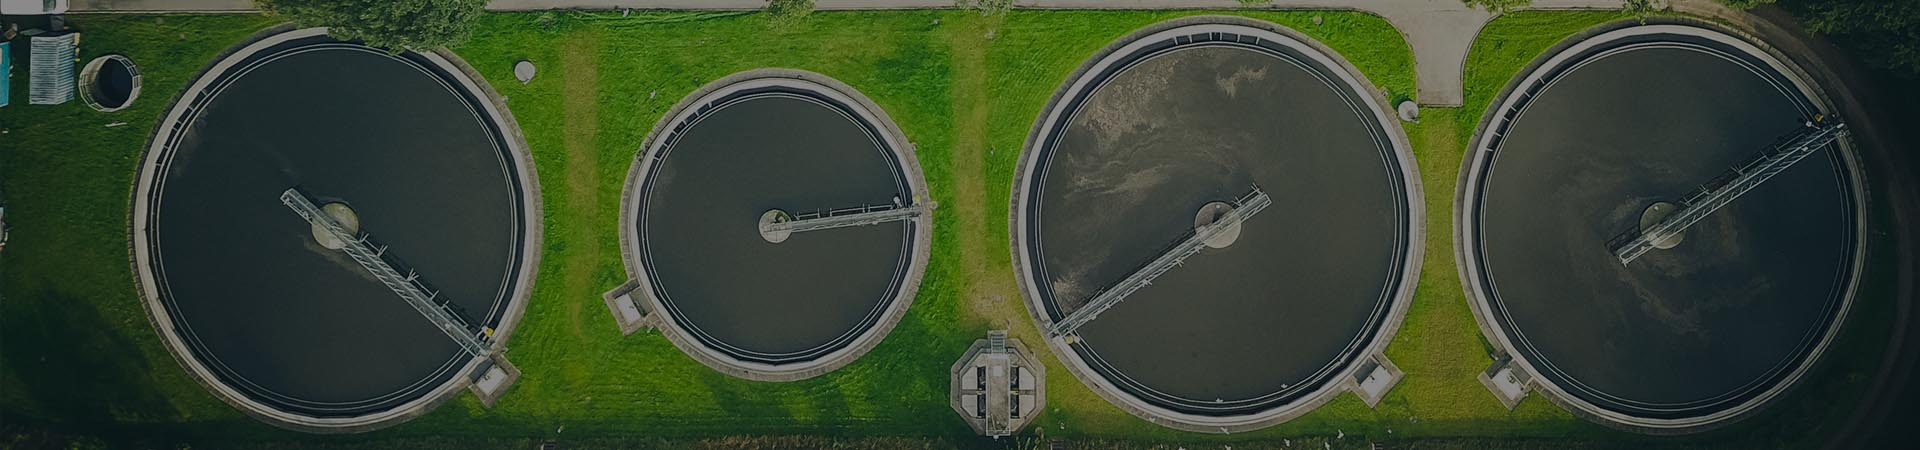 Aerial view of a water treatment plant